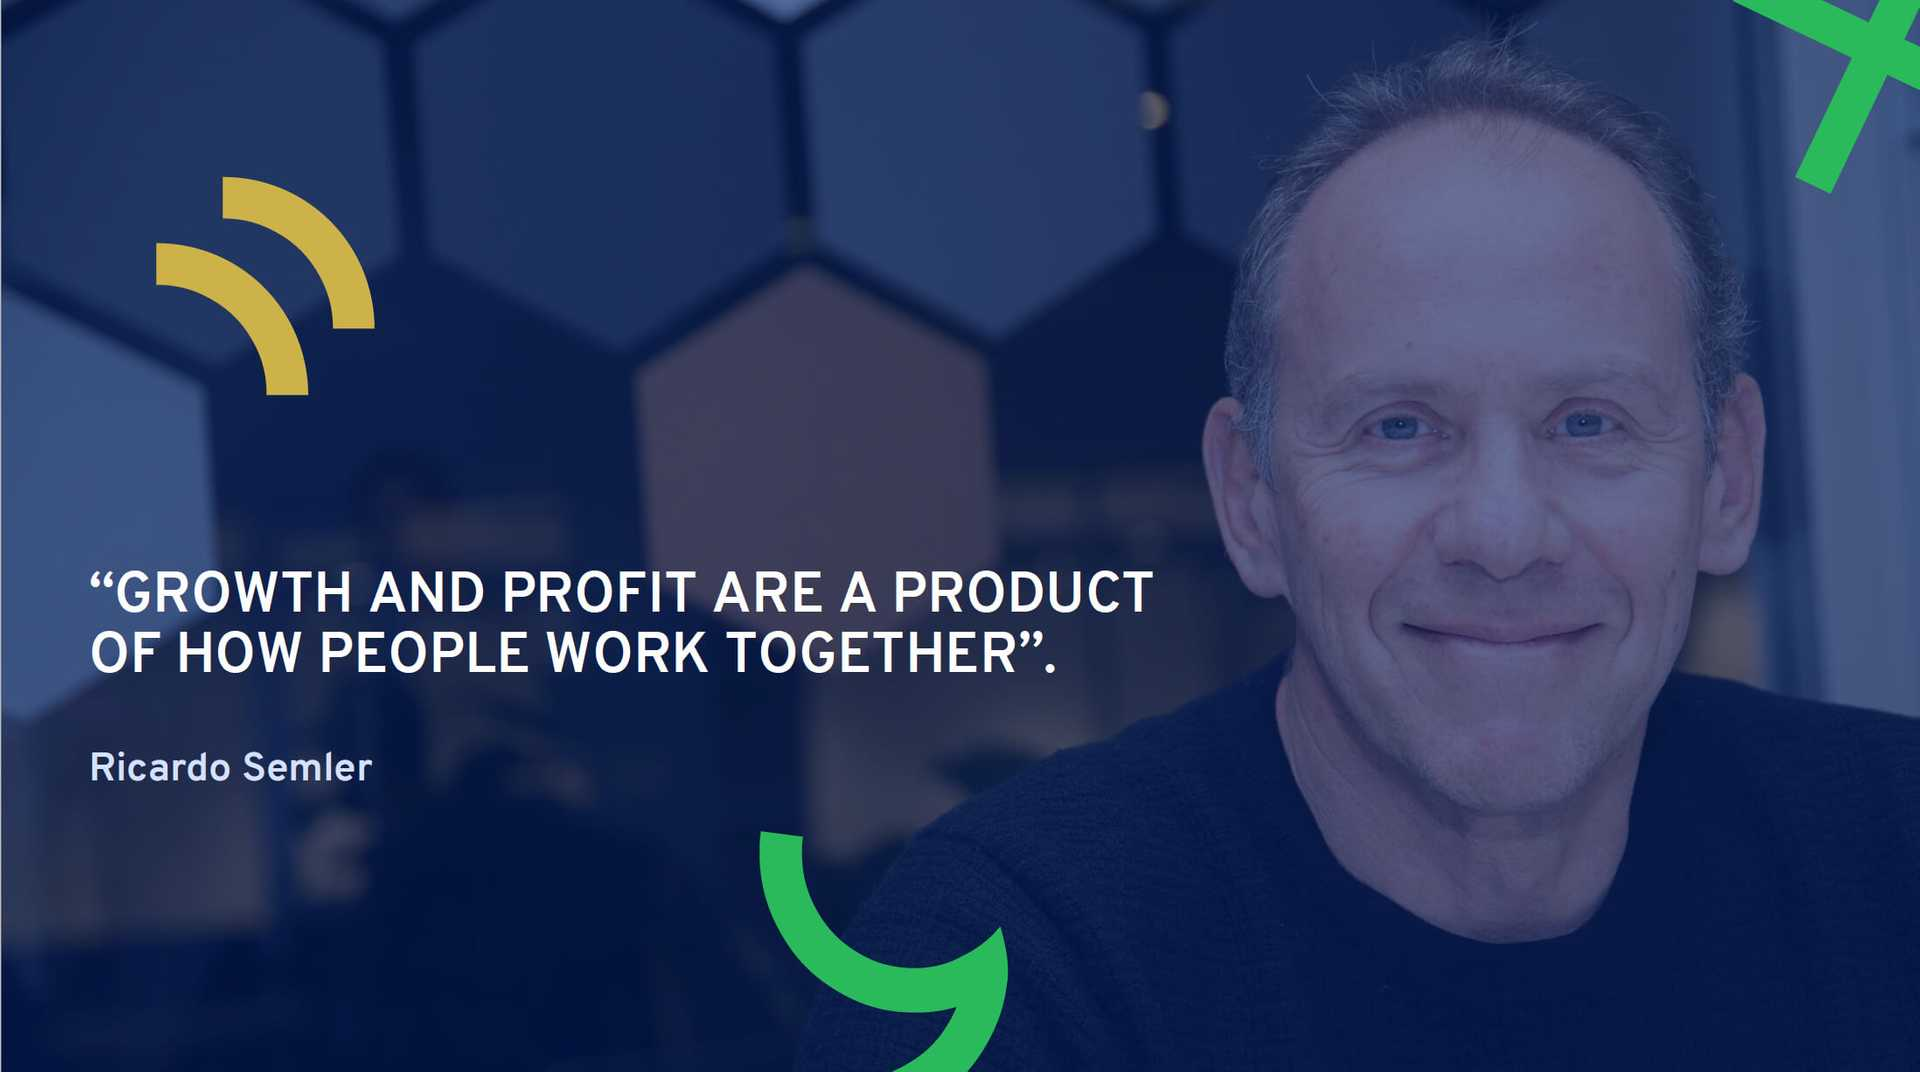 Growth and profit are a product of how people work together - Ricardo Semler